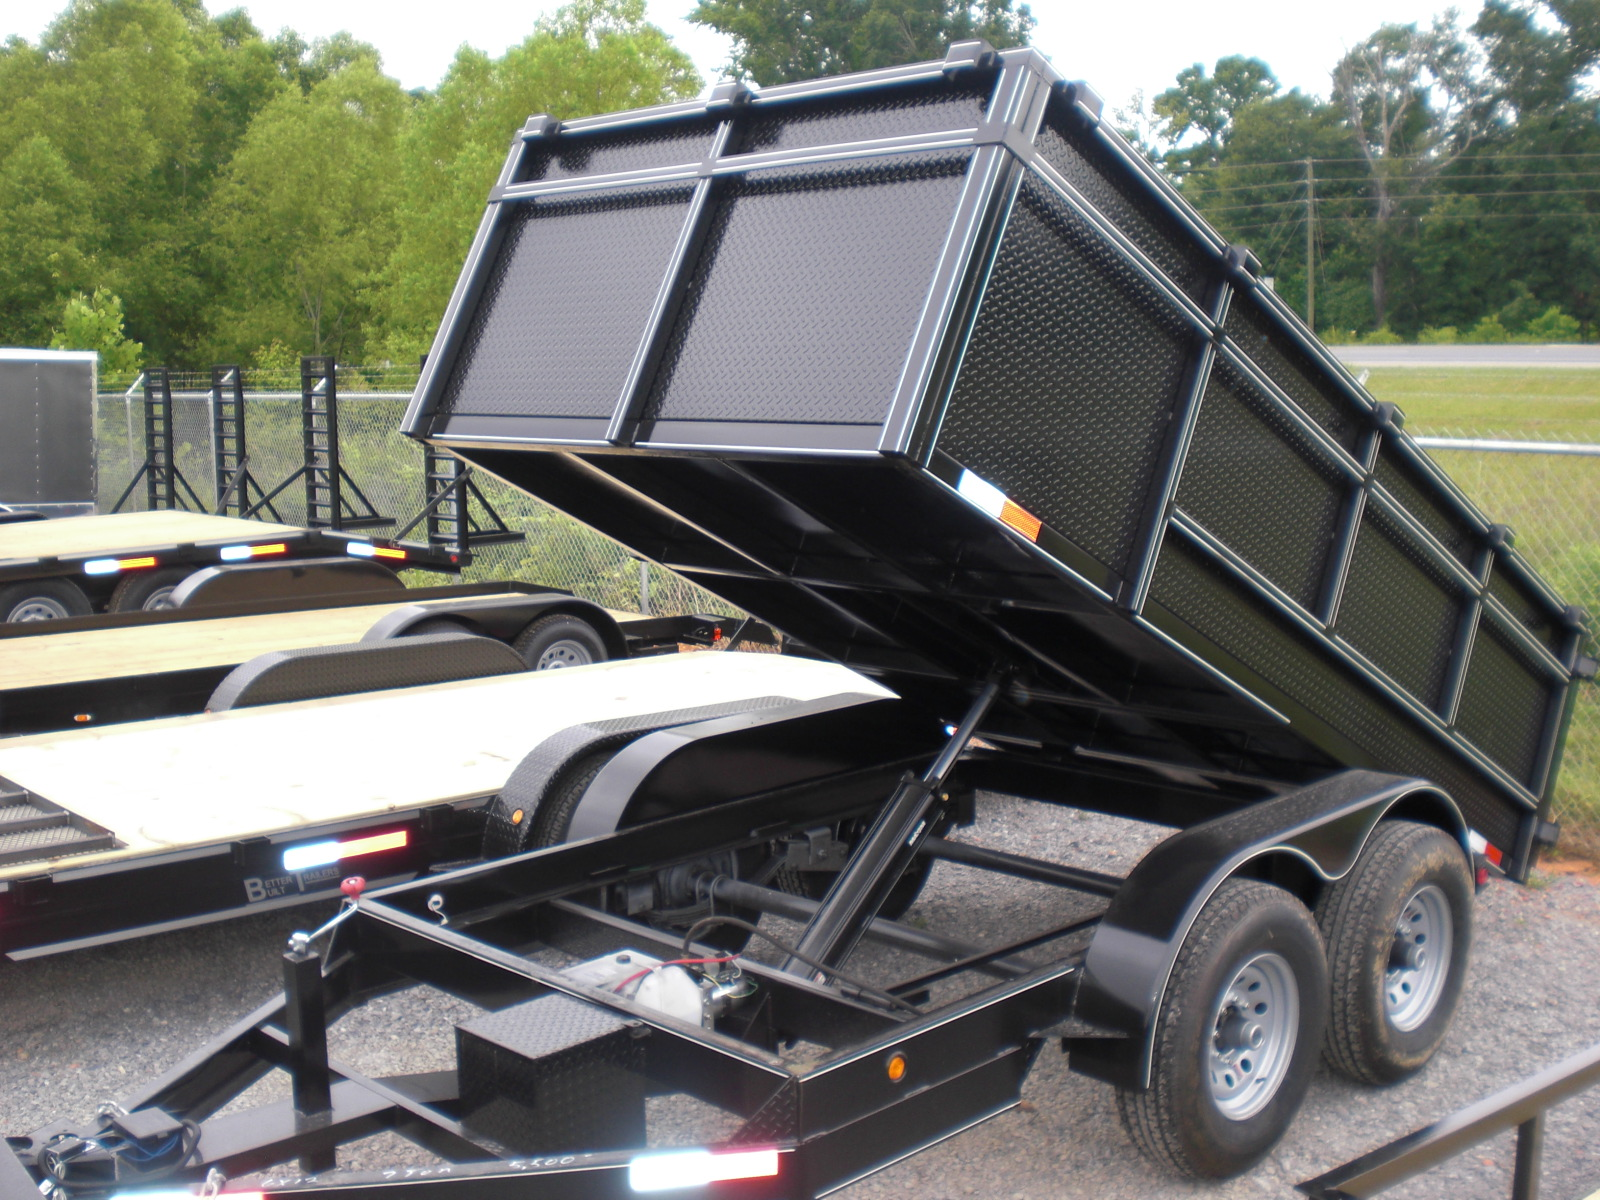 Tnt Outfitters Golf Carts Trailers Truck Accessories Utility Double Car Trailer 24 Foot Gooseneck Flatbed Montgomery Al